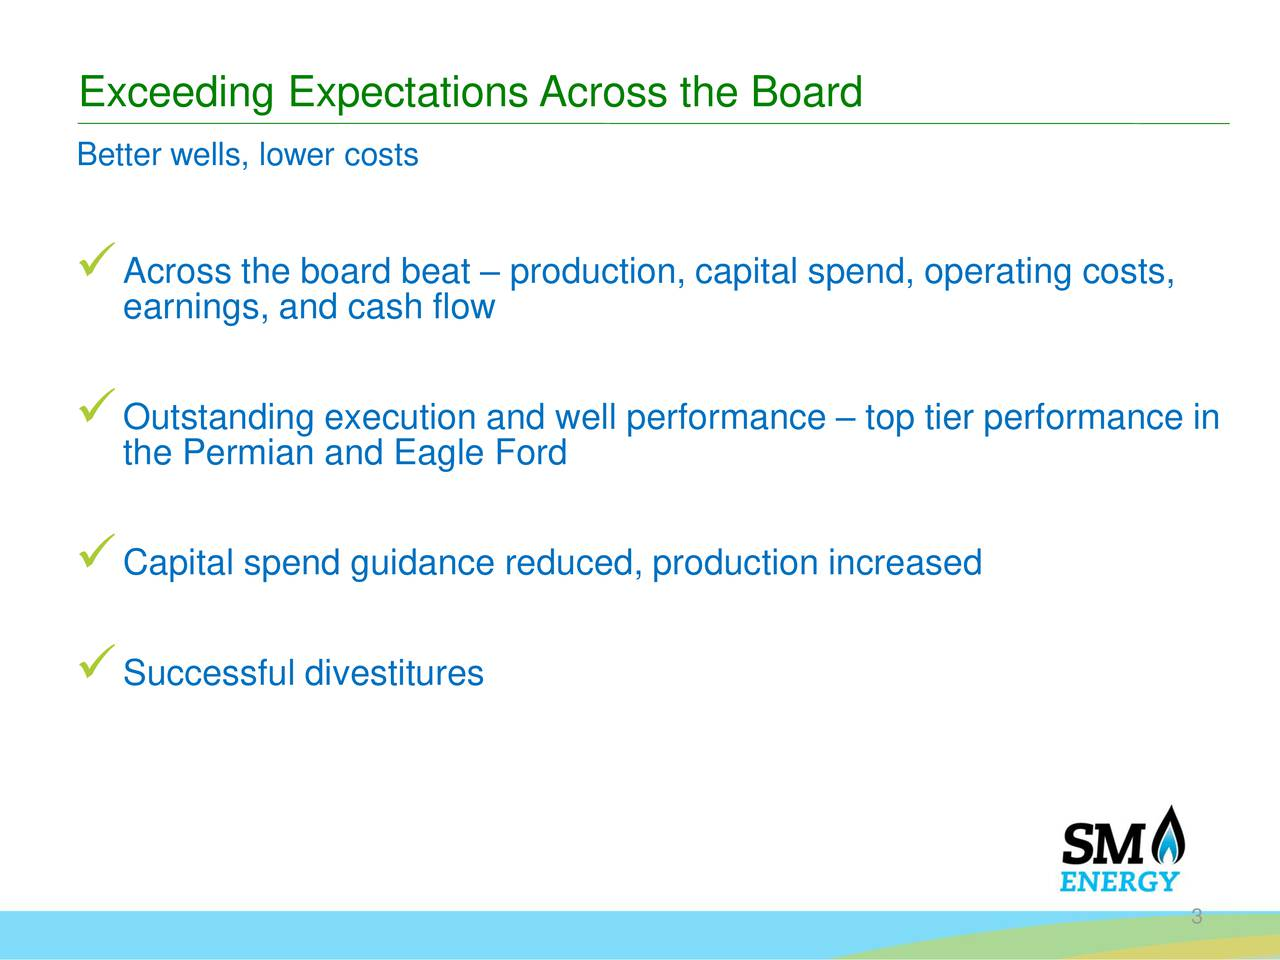 Better wells, lower costs Across the board beat  production, capital spend, operating costs, earnings, and cash flow Outstanding execution and well performance  top tier performance in the Permian and Eagle Ford Capital spend guidance reduced, production increased Successful divestitures 3